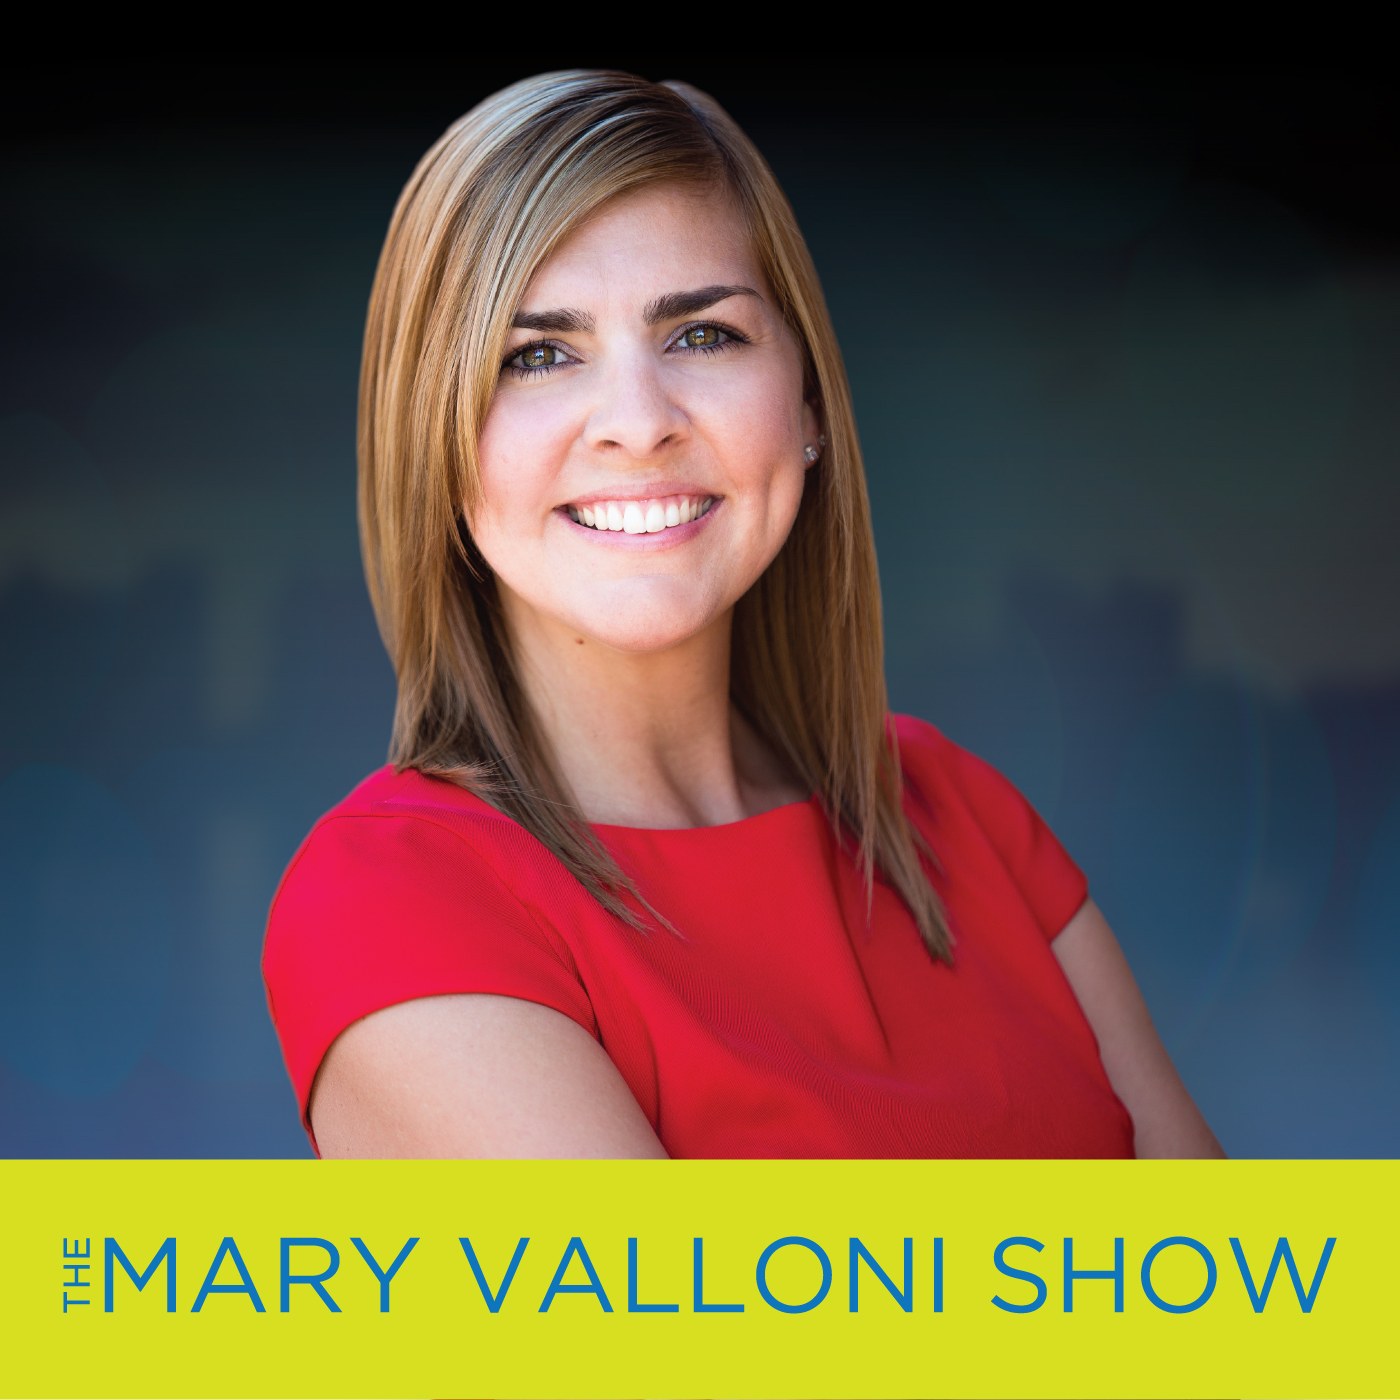 THE MARY VALLONI SHOW